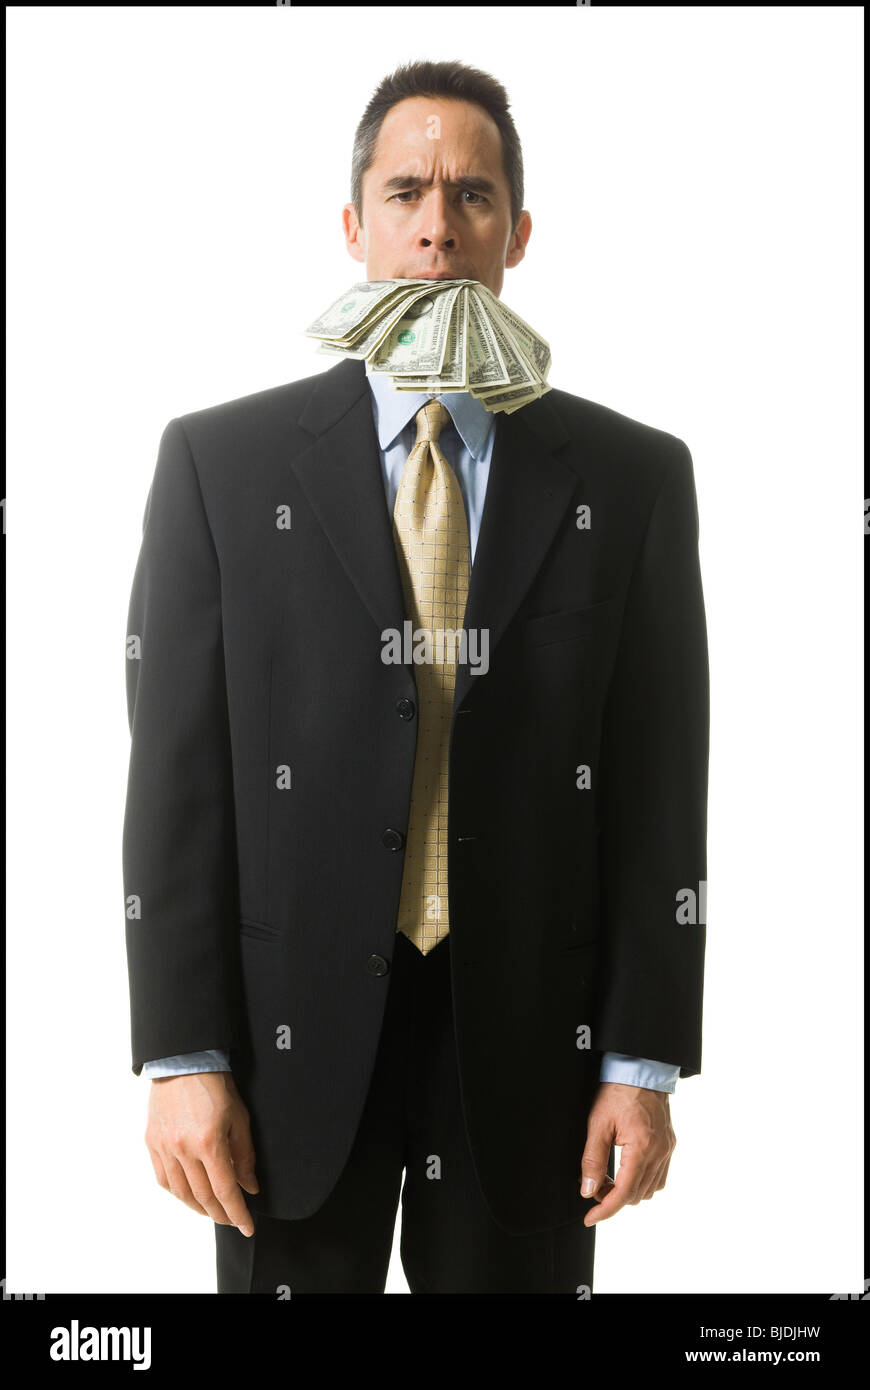 businessperson with a mouth full of money - Stock Image